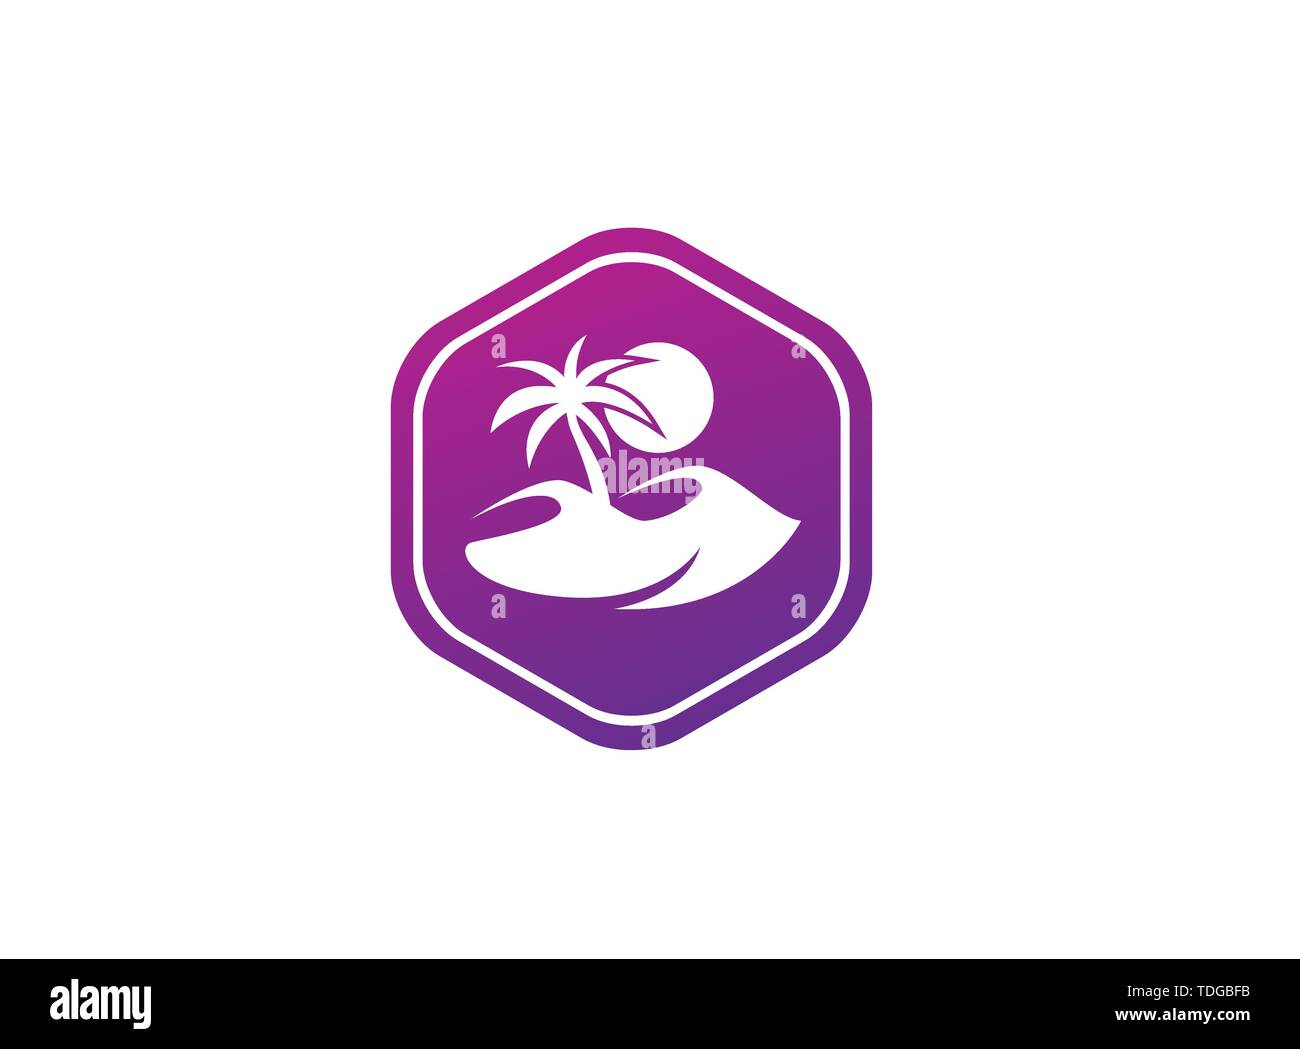 desert logo palm and sand and sun vector design illustration in the shape - Stock Image